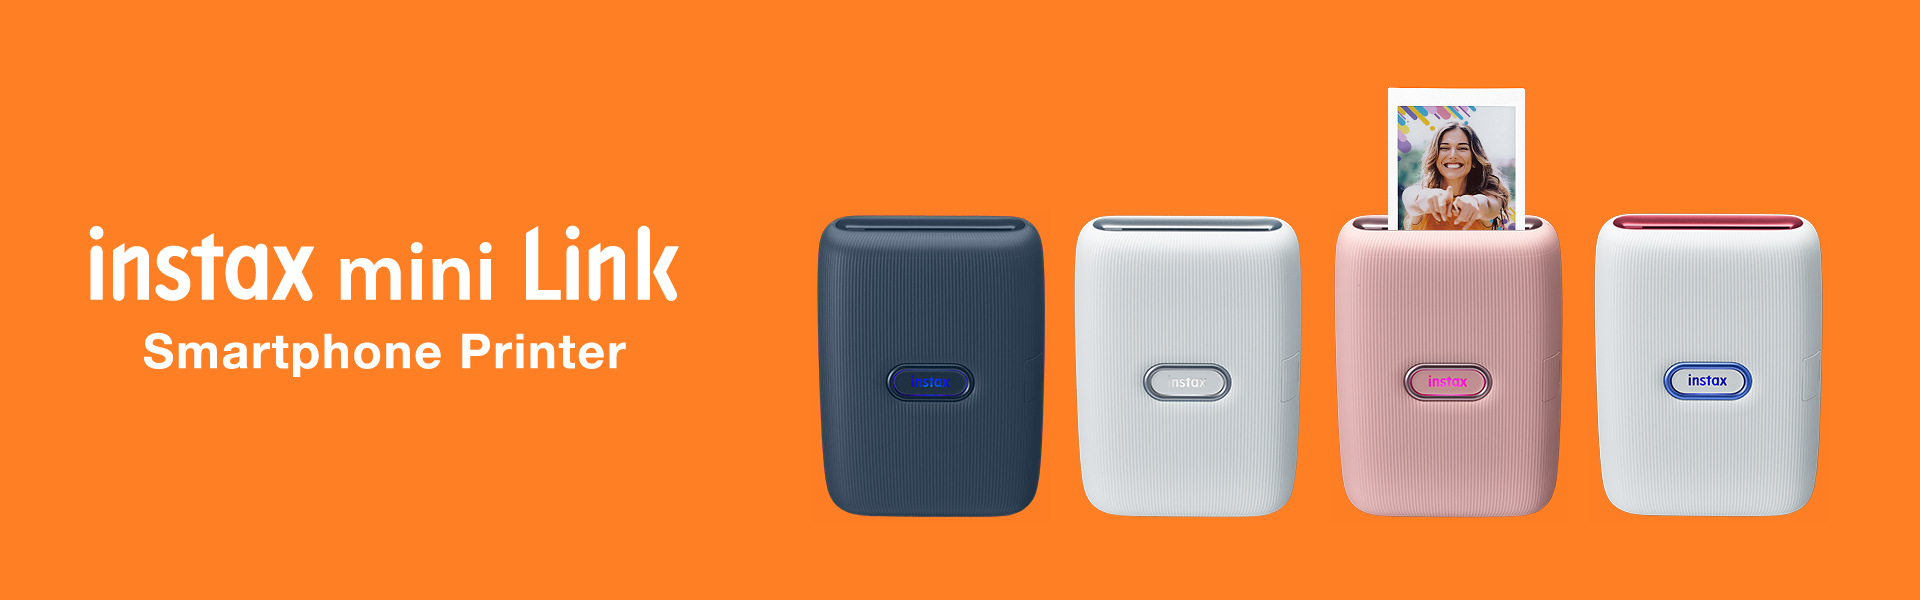 [photo] Three instax mini Link printers in Dark Denim, Ash White, and Dusky Pink colors